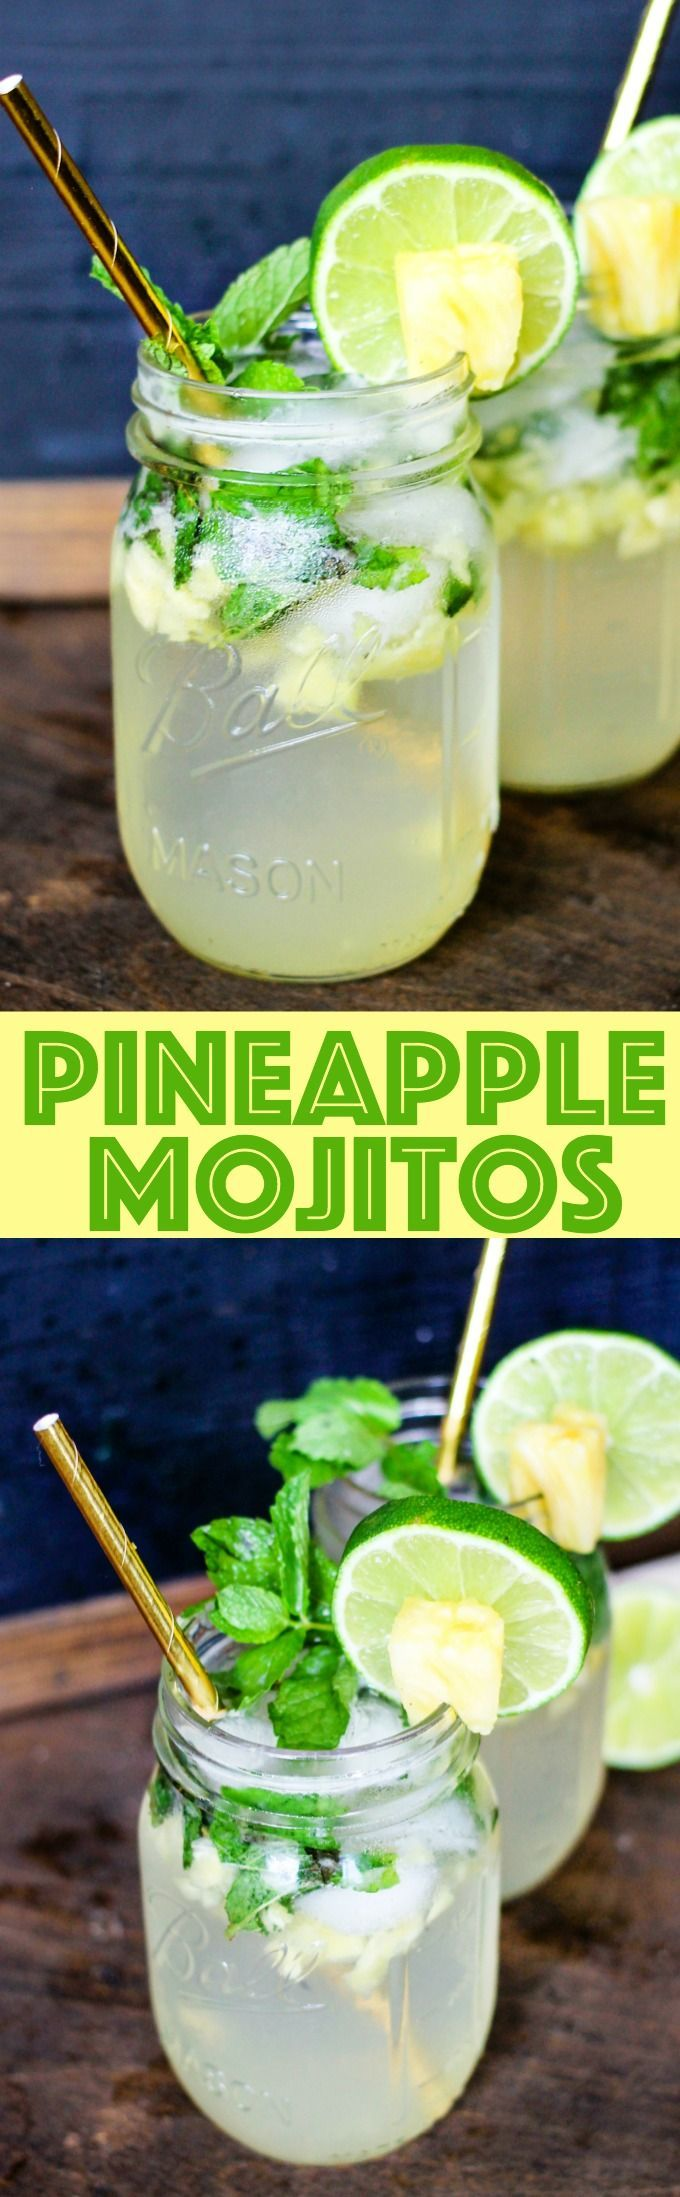 Pineapple Mojitos are full of fresh pineapple, mint, and lime! They are the bursting with flavor and make the best summer cocktail!